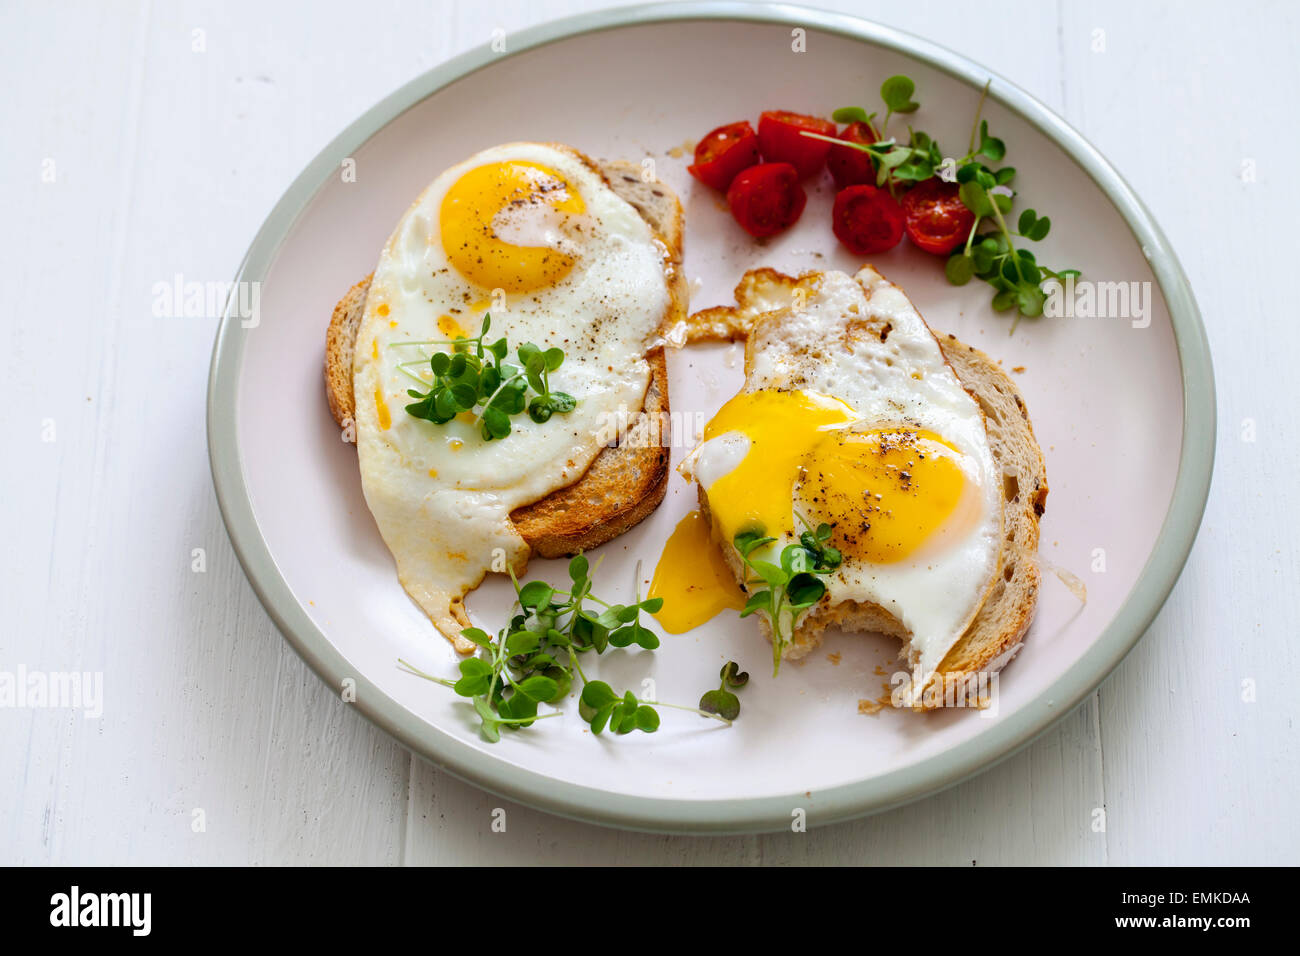 Breakfast, eggs on toast with cherry tomatoes and cress Stock Photo